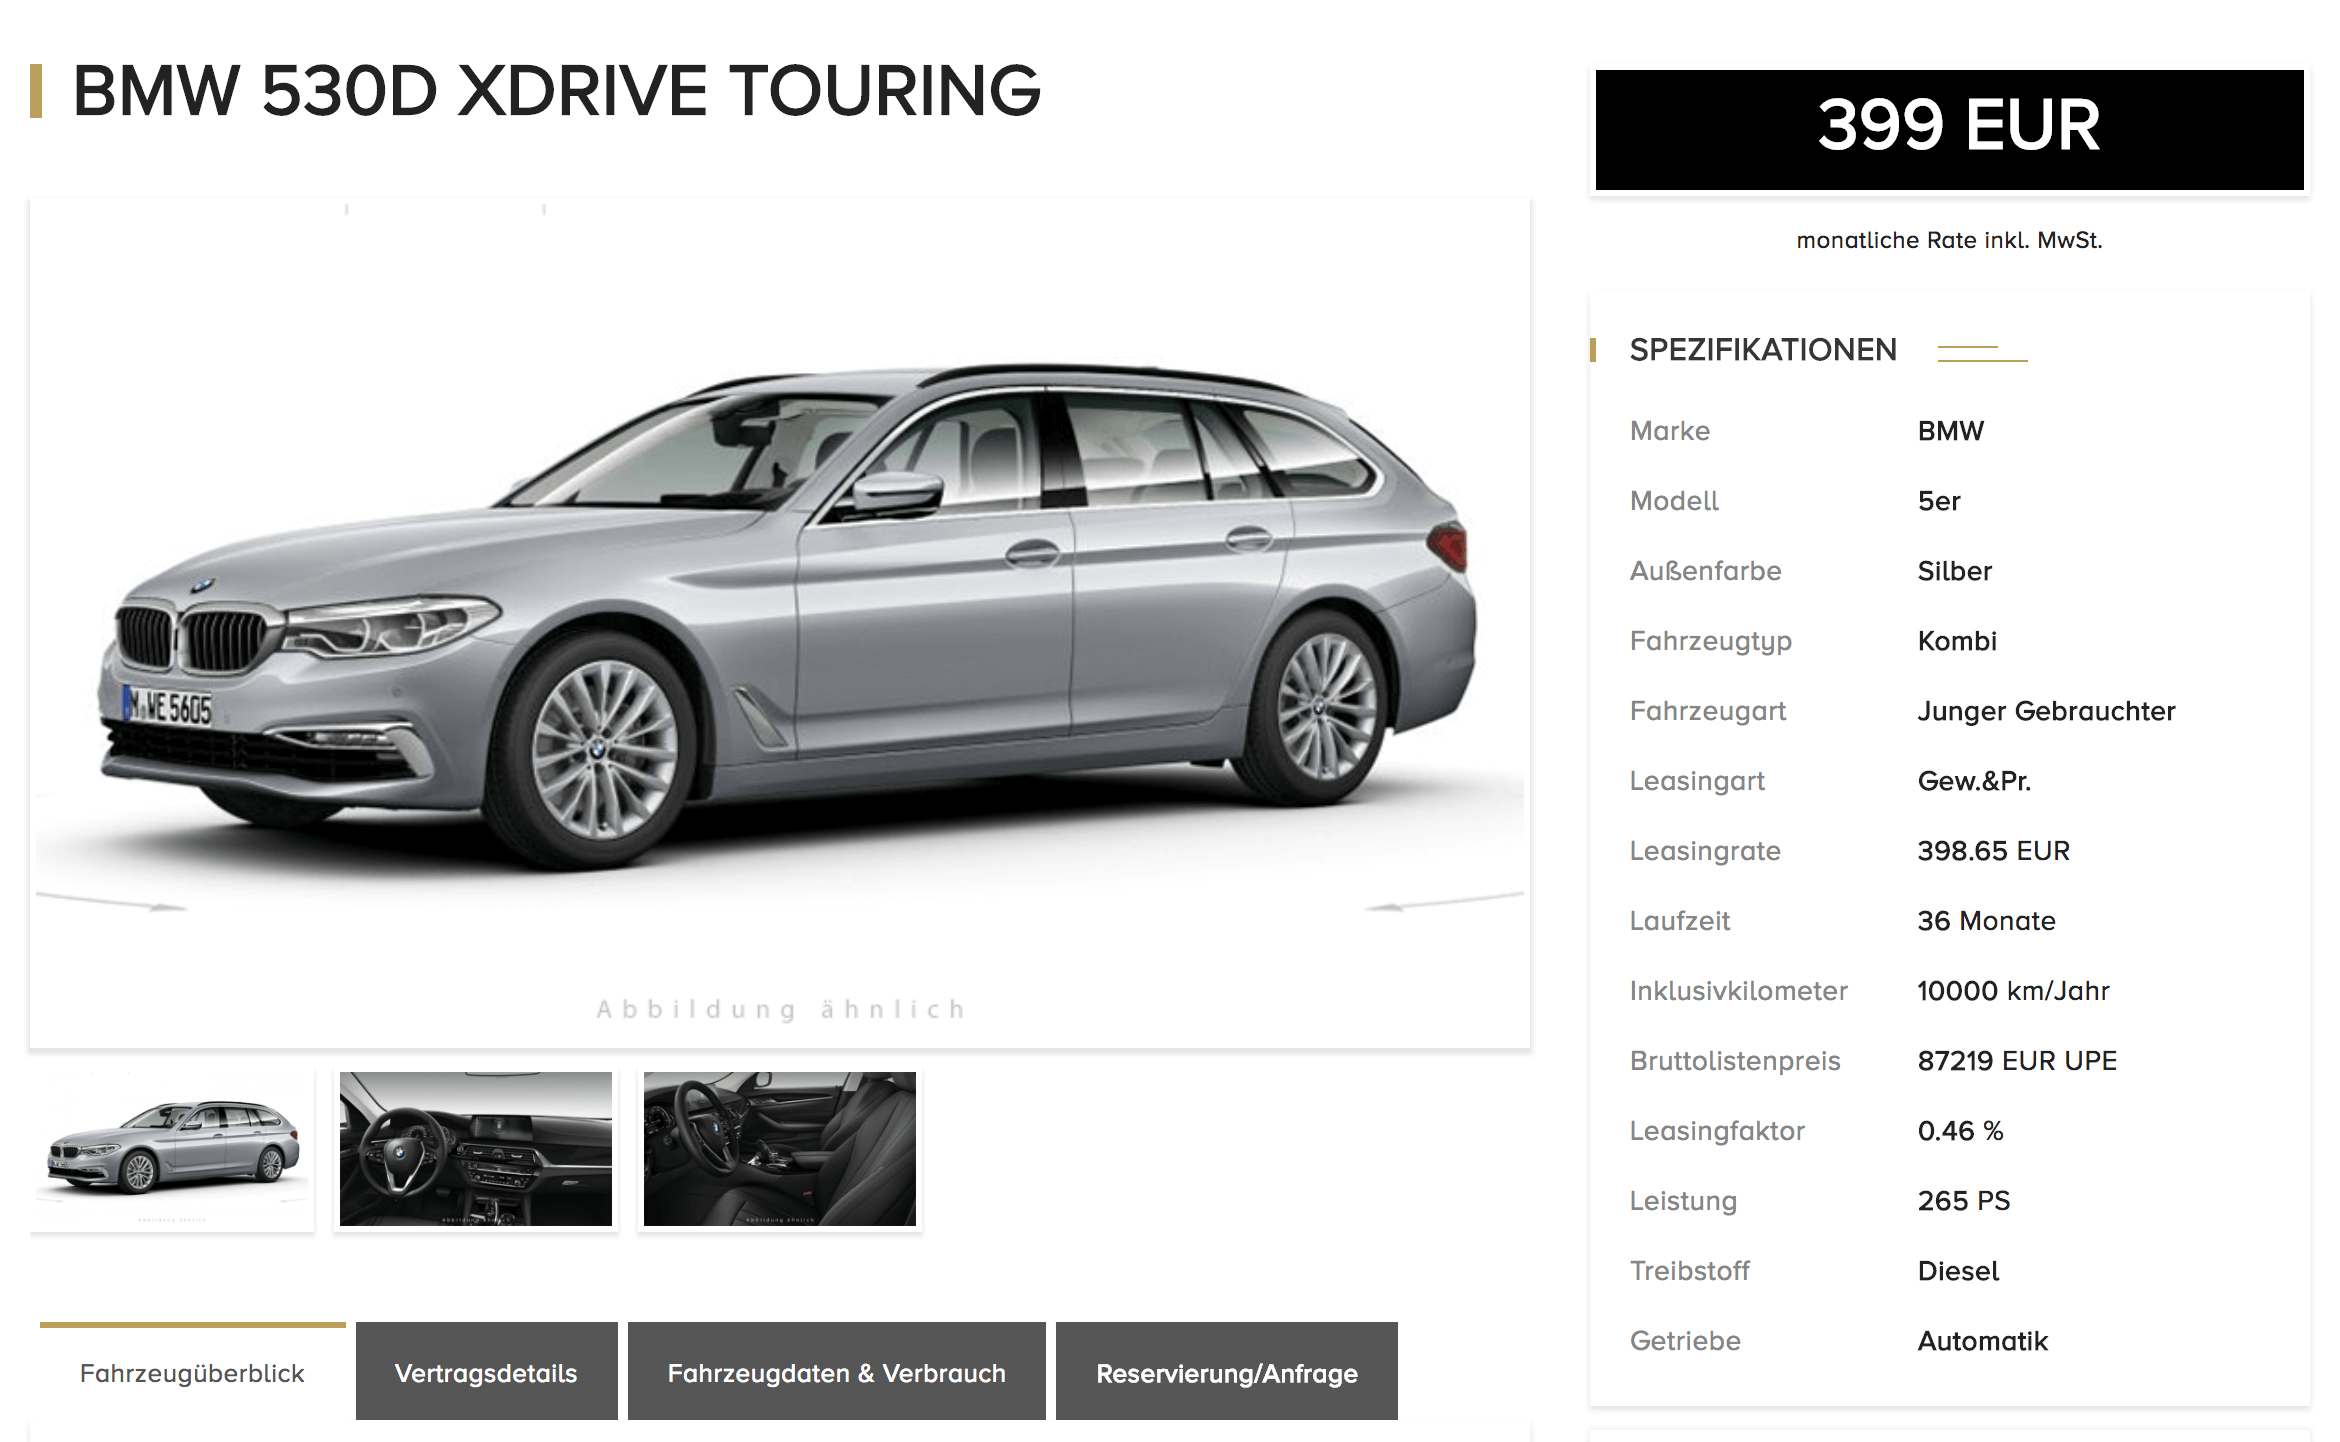 bmw 530d xdrive touring leasing ab 392 euro im monat. Black Bedroom Furniture Sets. Home Design Ideas